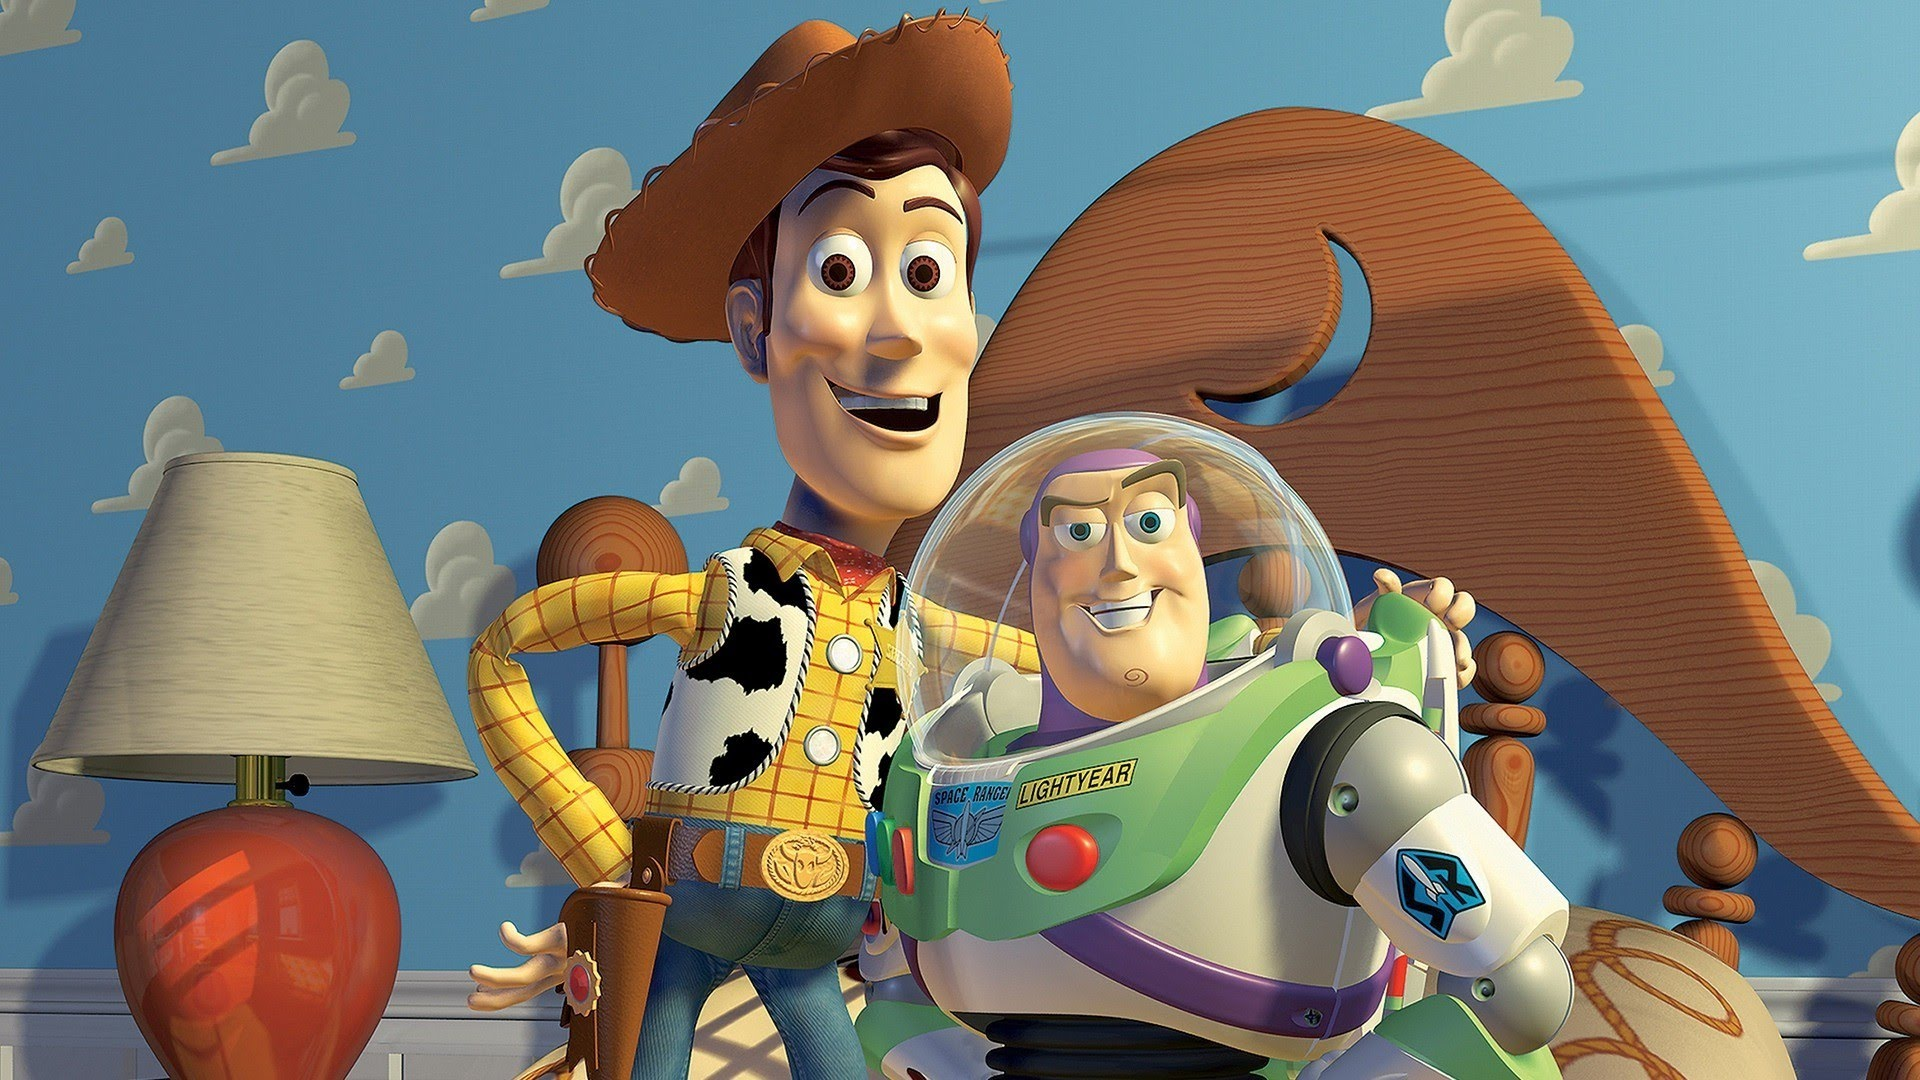 Pixar confirm Woody and Buzz will return in Toy Story 4 in June 2019